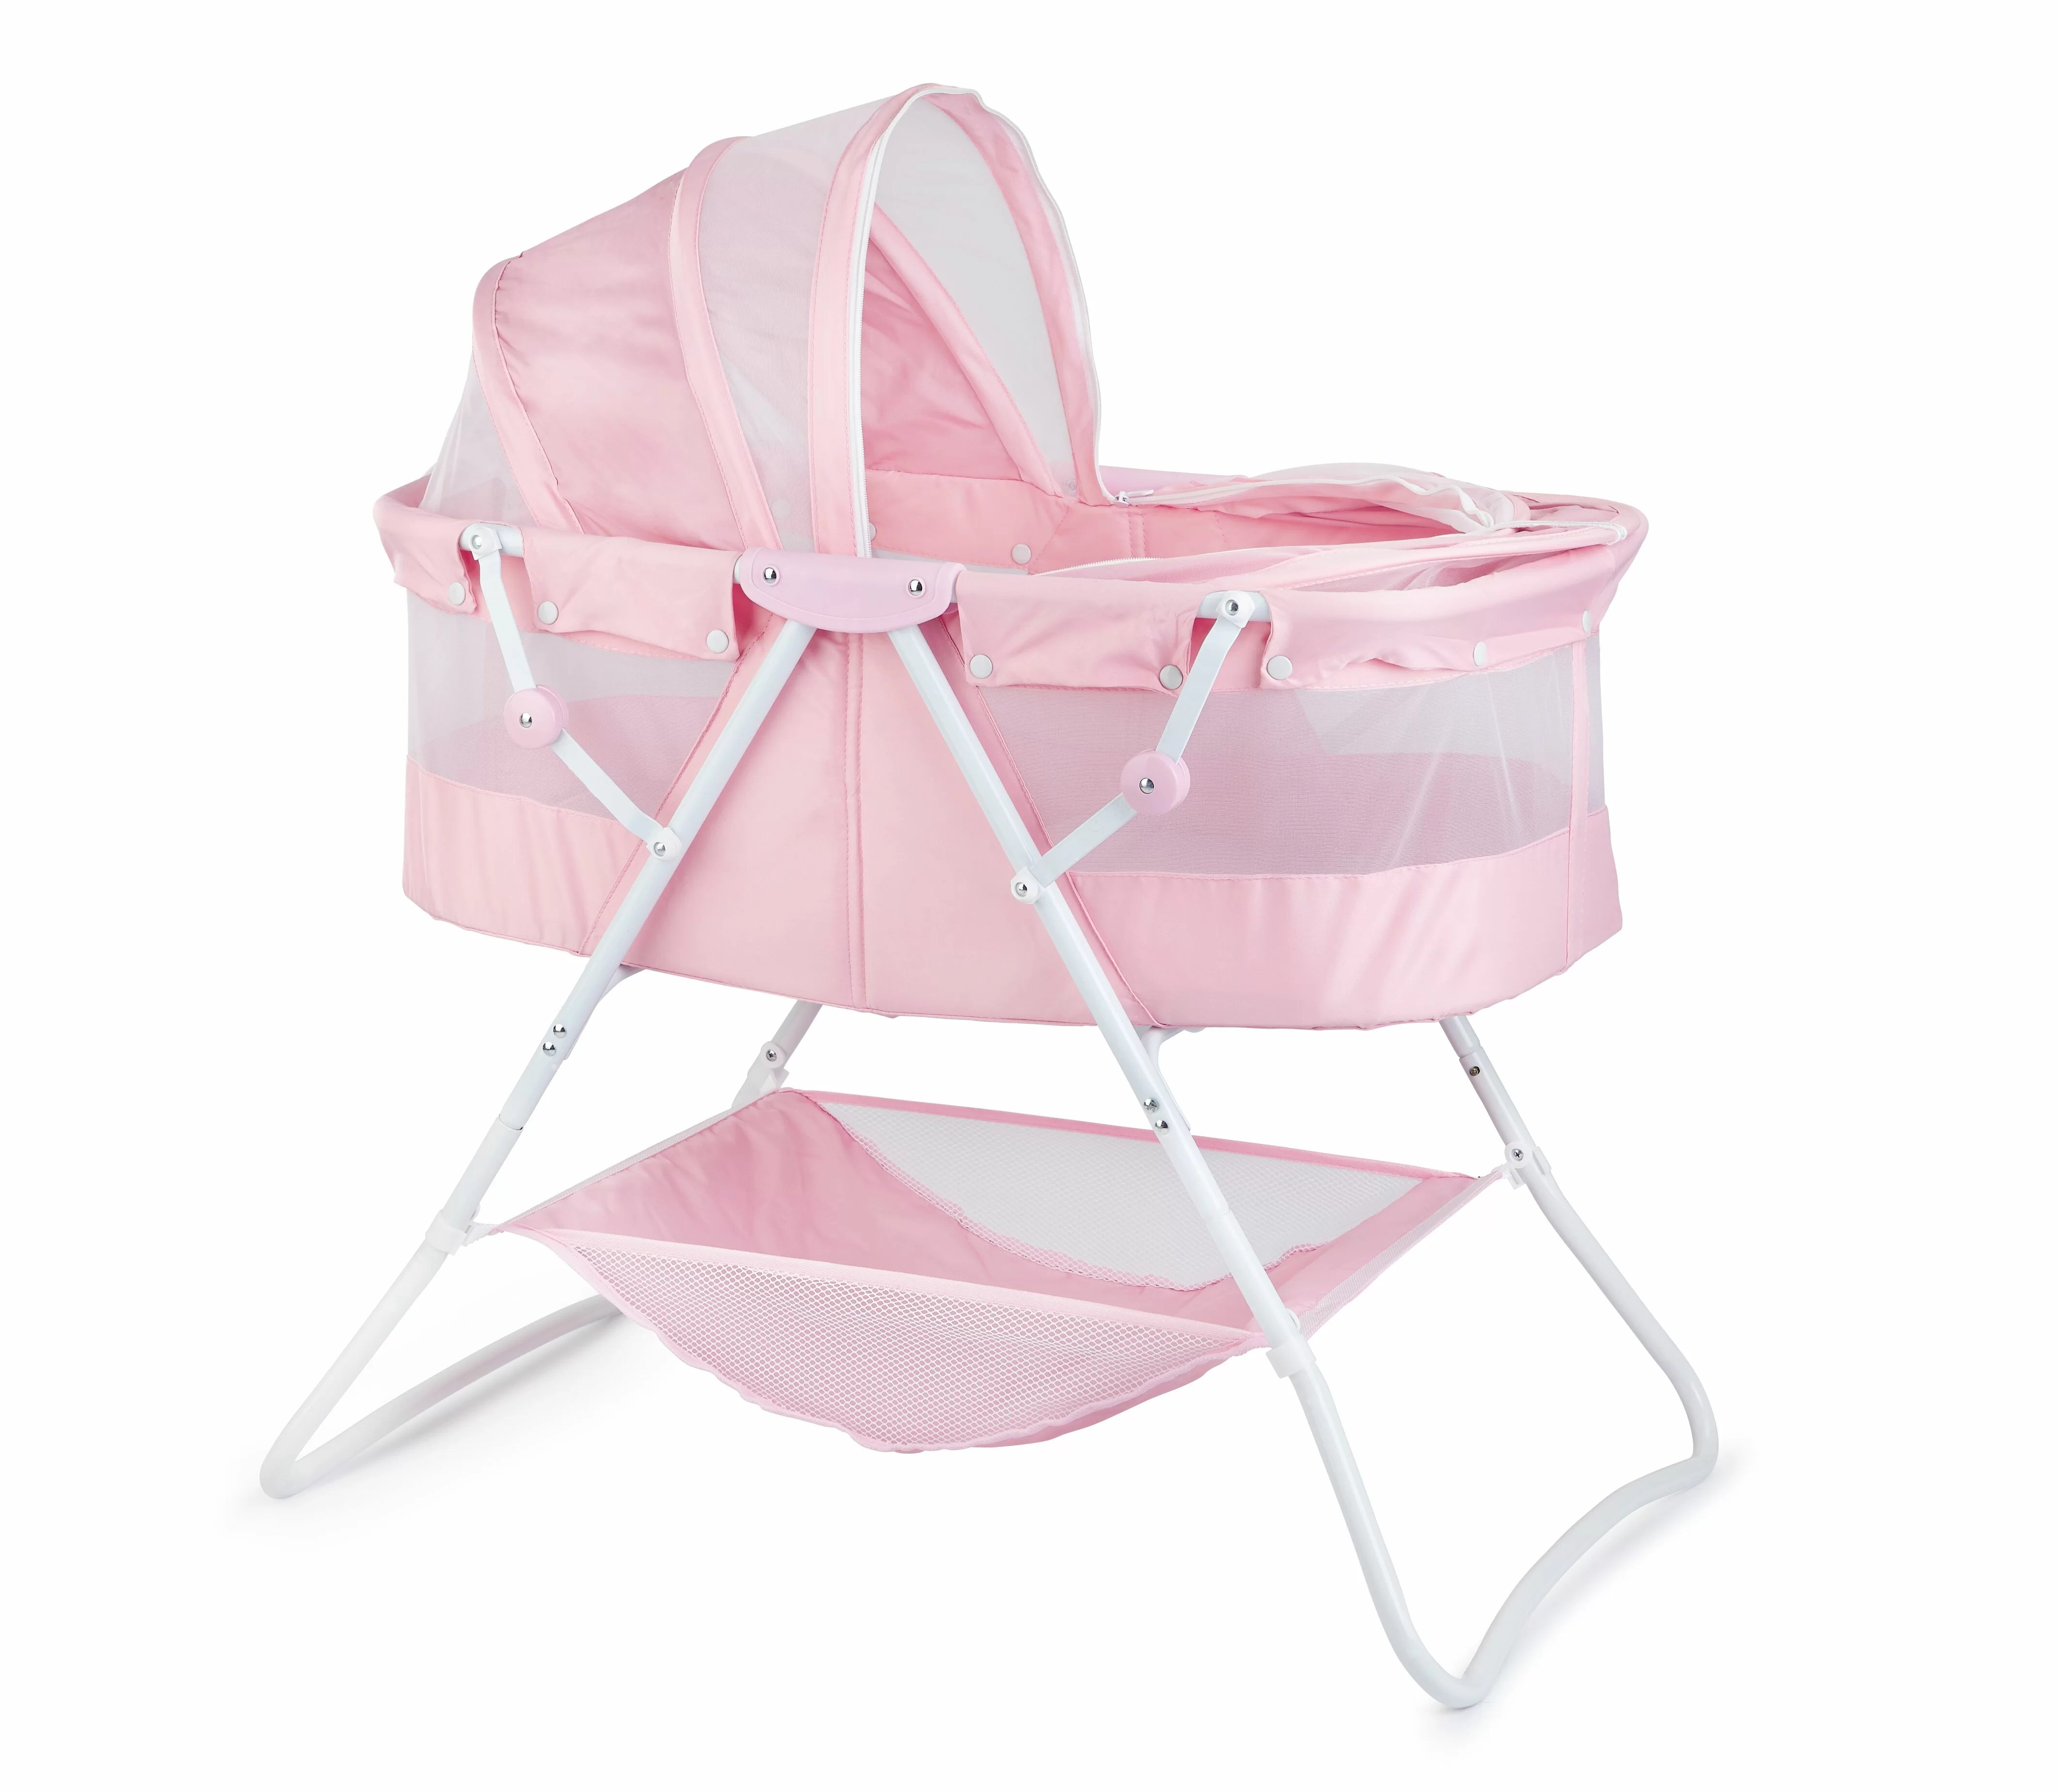 Graco Newborn Bassinet Emma Portable Newborn Bassinet